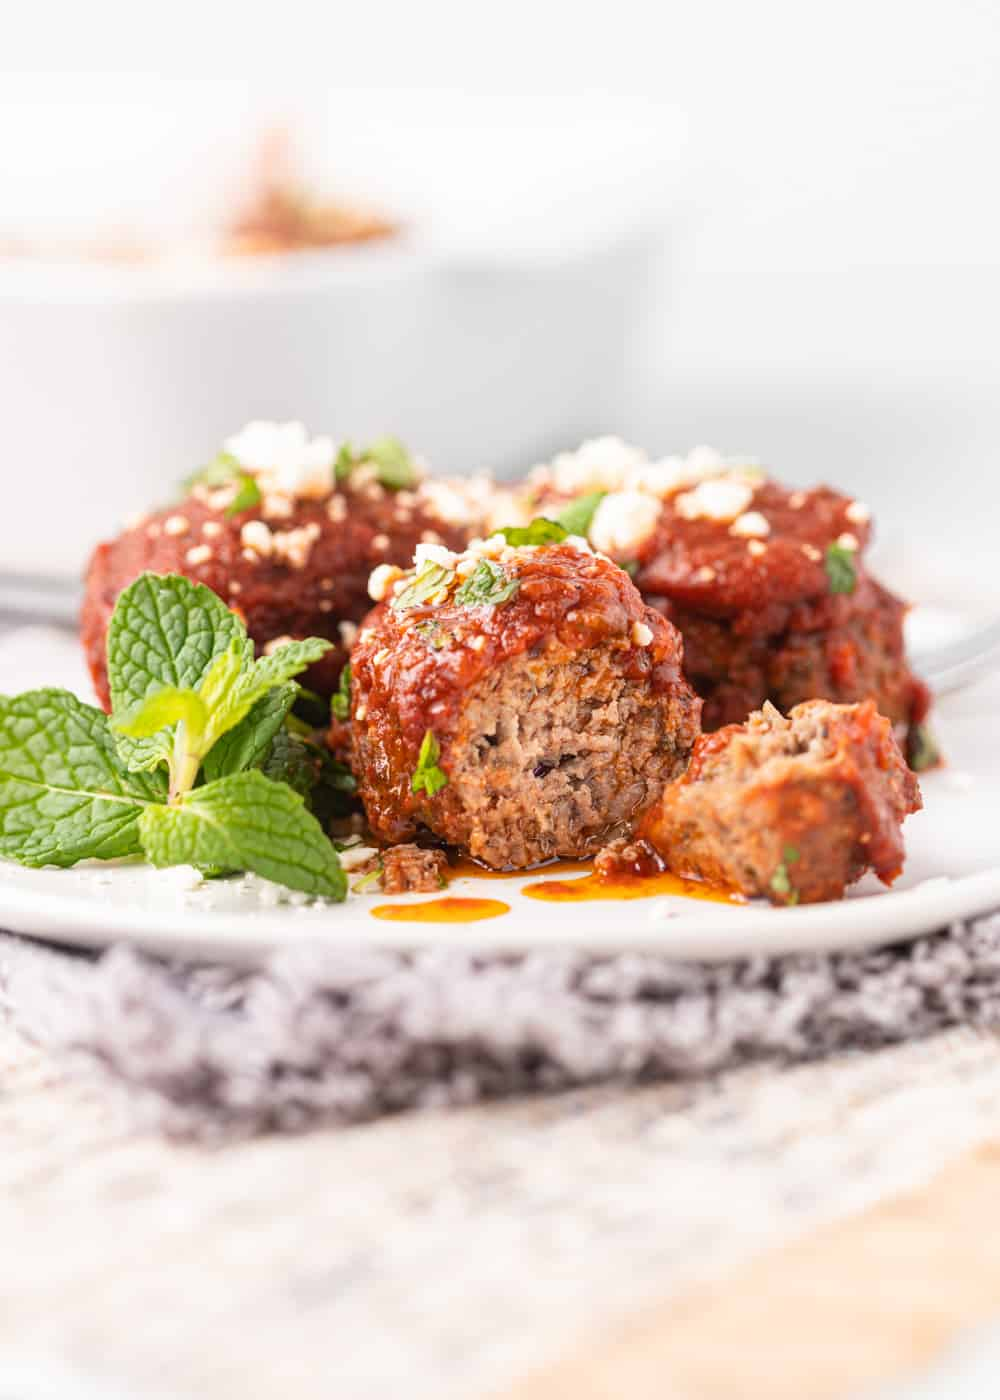 cut side of meatball with tomato sauce and mint leaves on white plate